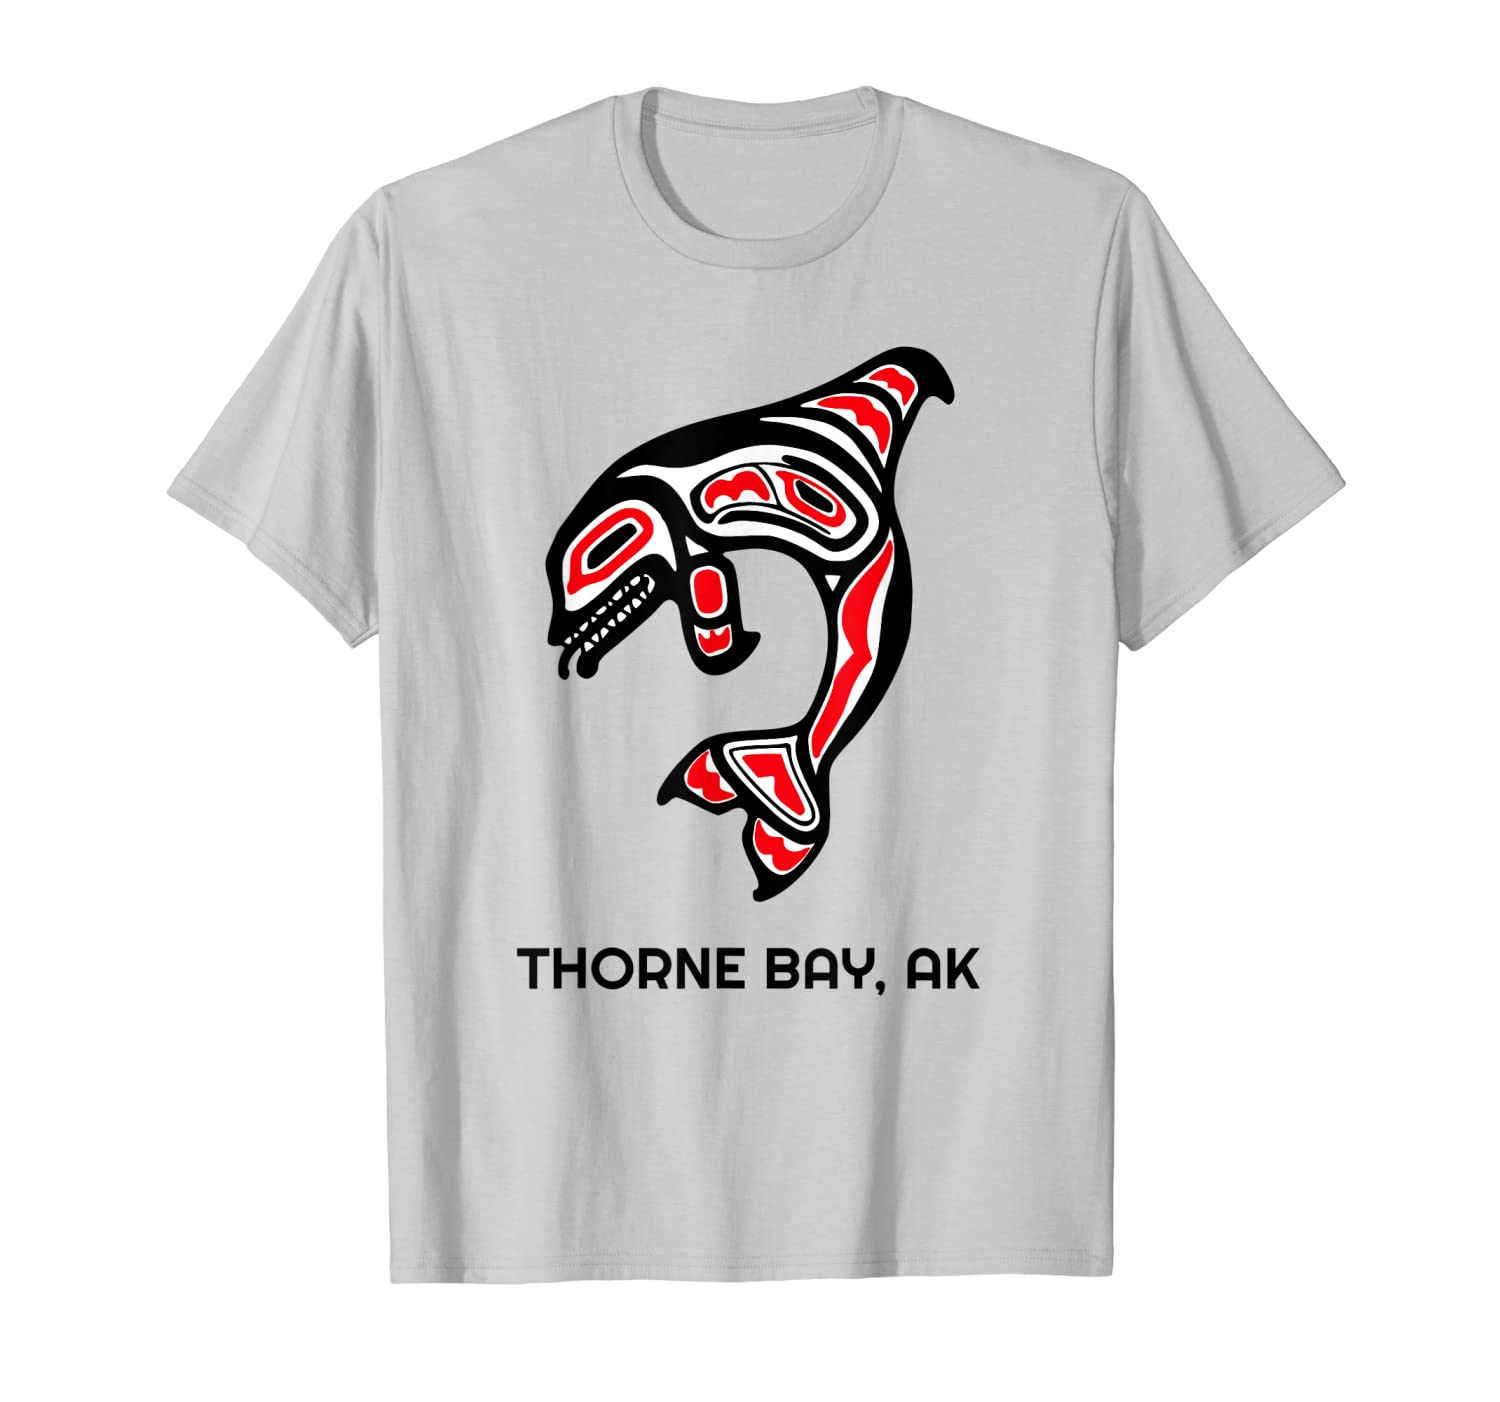 Thorne Bay, Alaska Native American Indian Orca Killer Whales T-Shirt